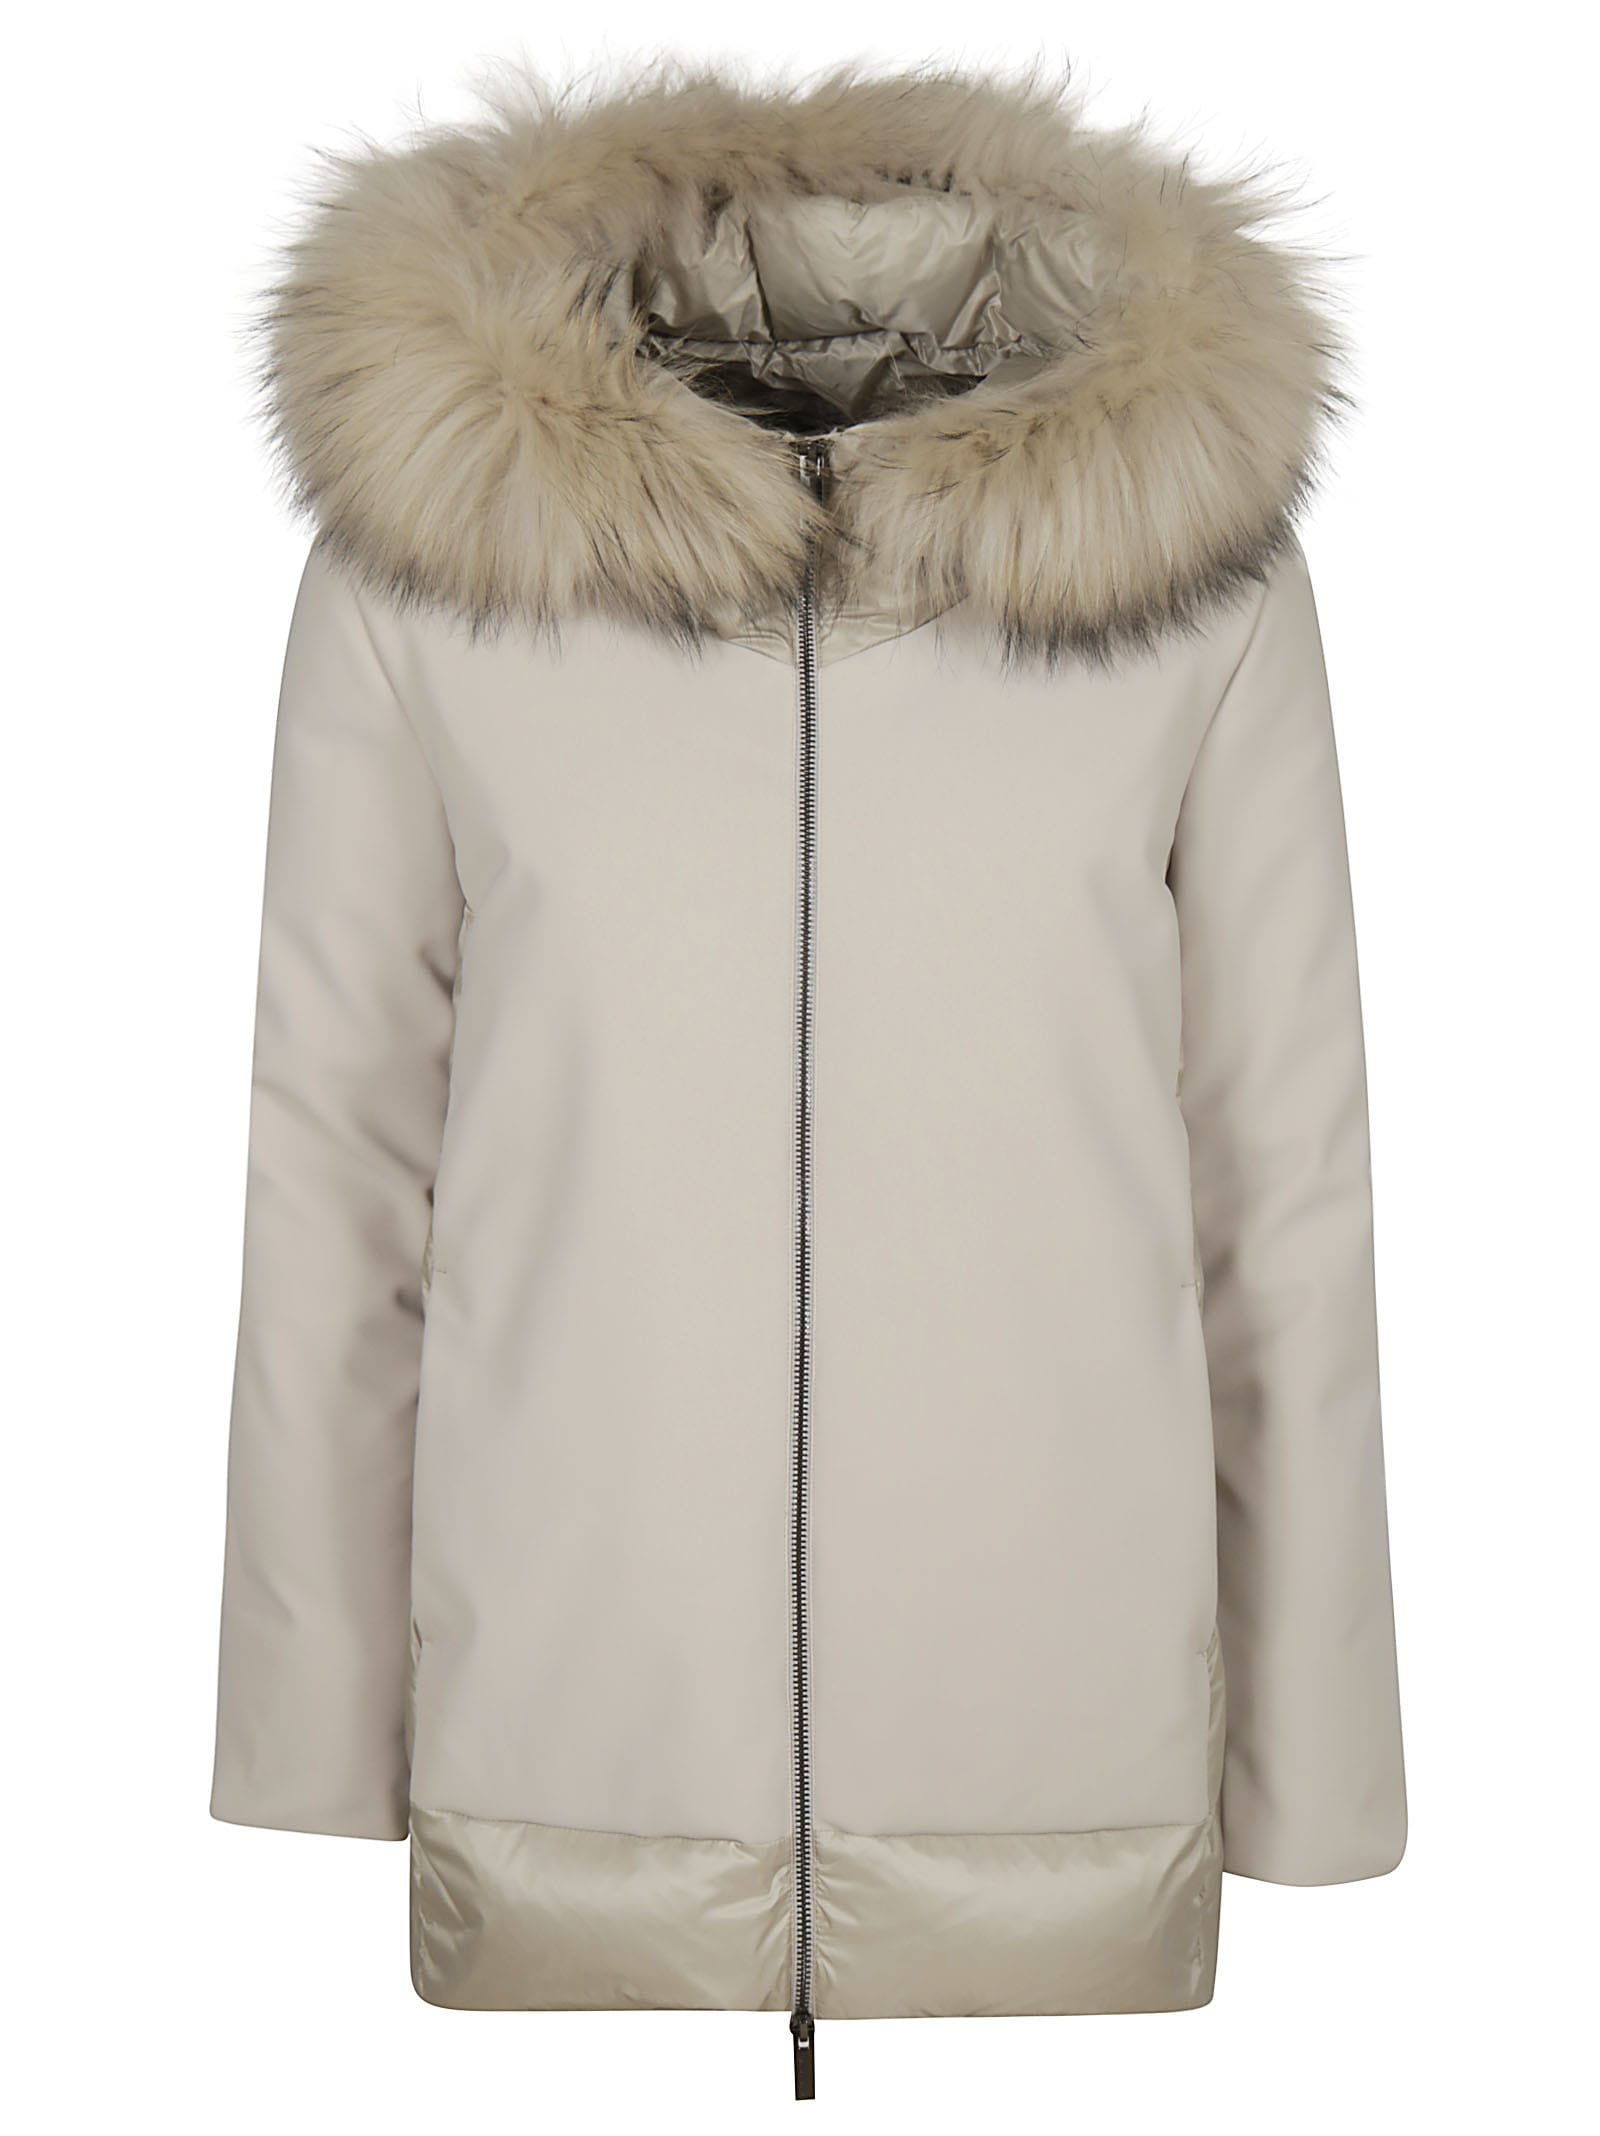 RRD – Roberto Ricci Design Winter Hybrid Feathered Hood Jacket